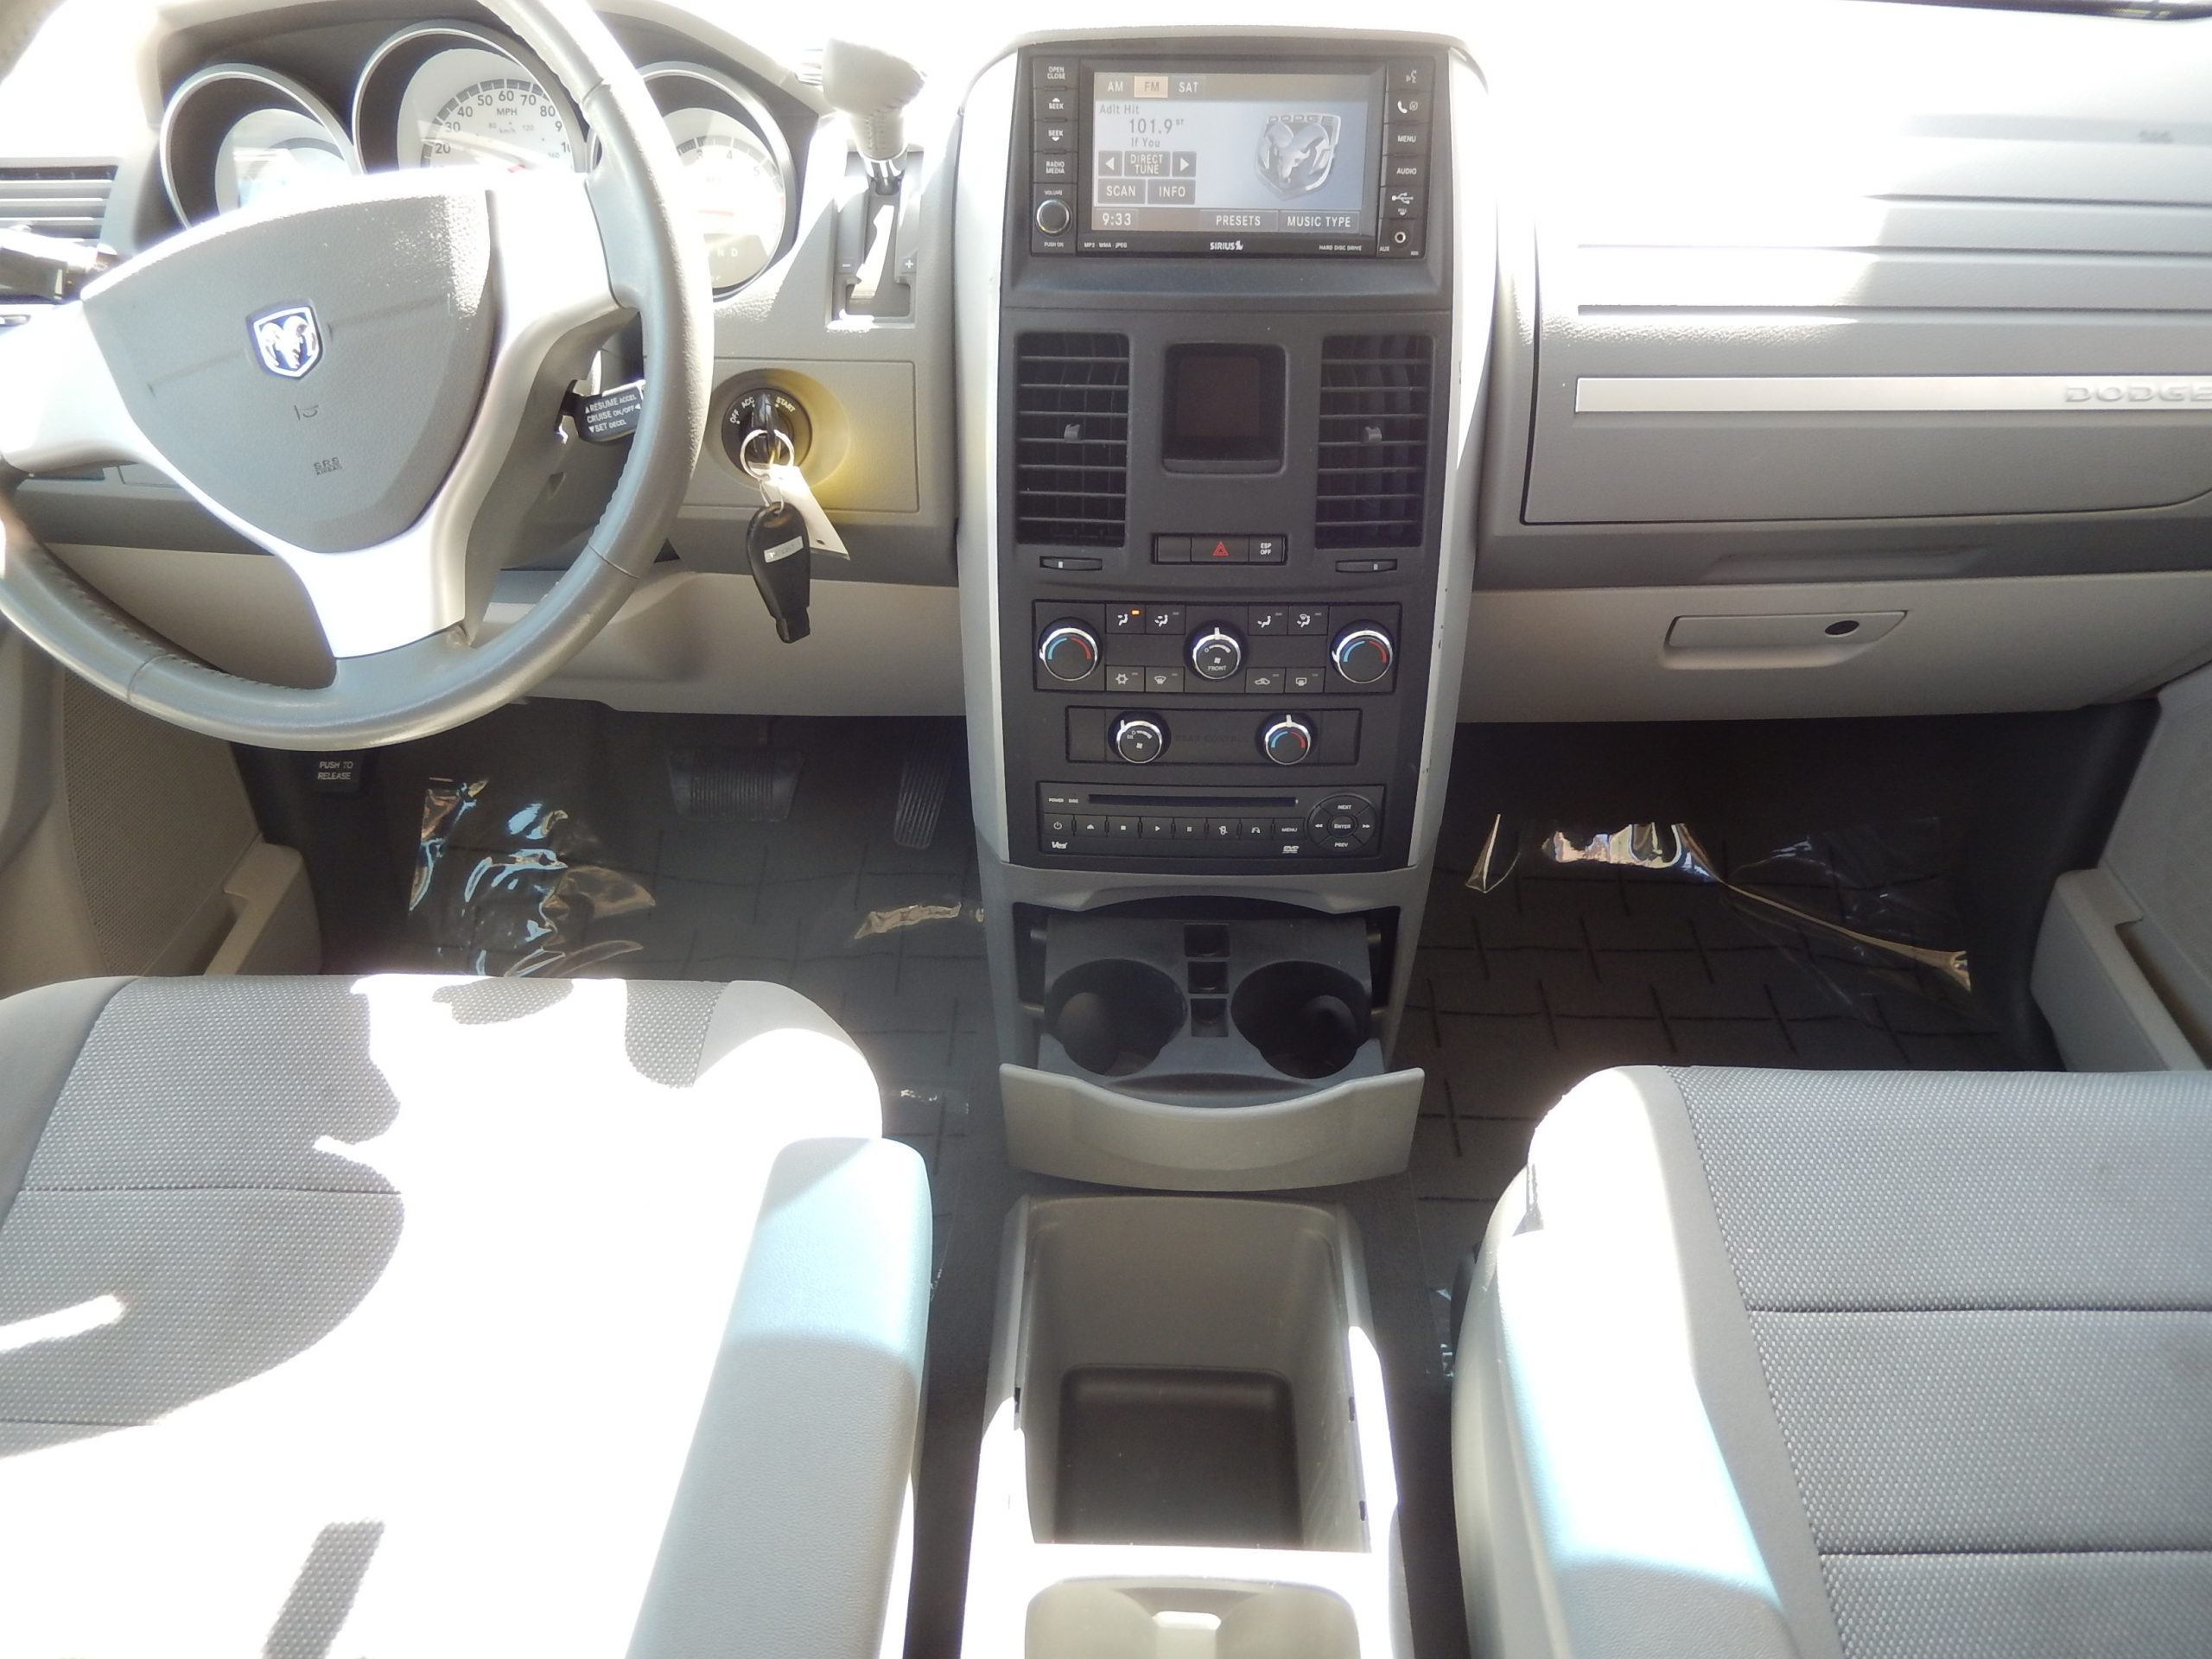 Used 2009 Dodge Grand Caravan SXT Minivan for sale in